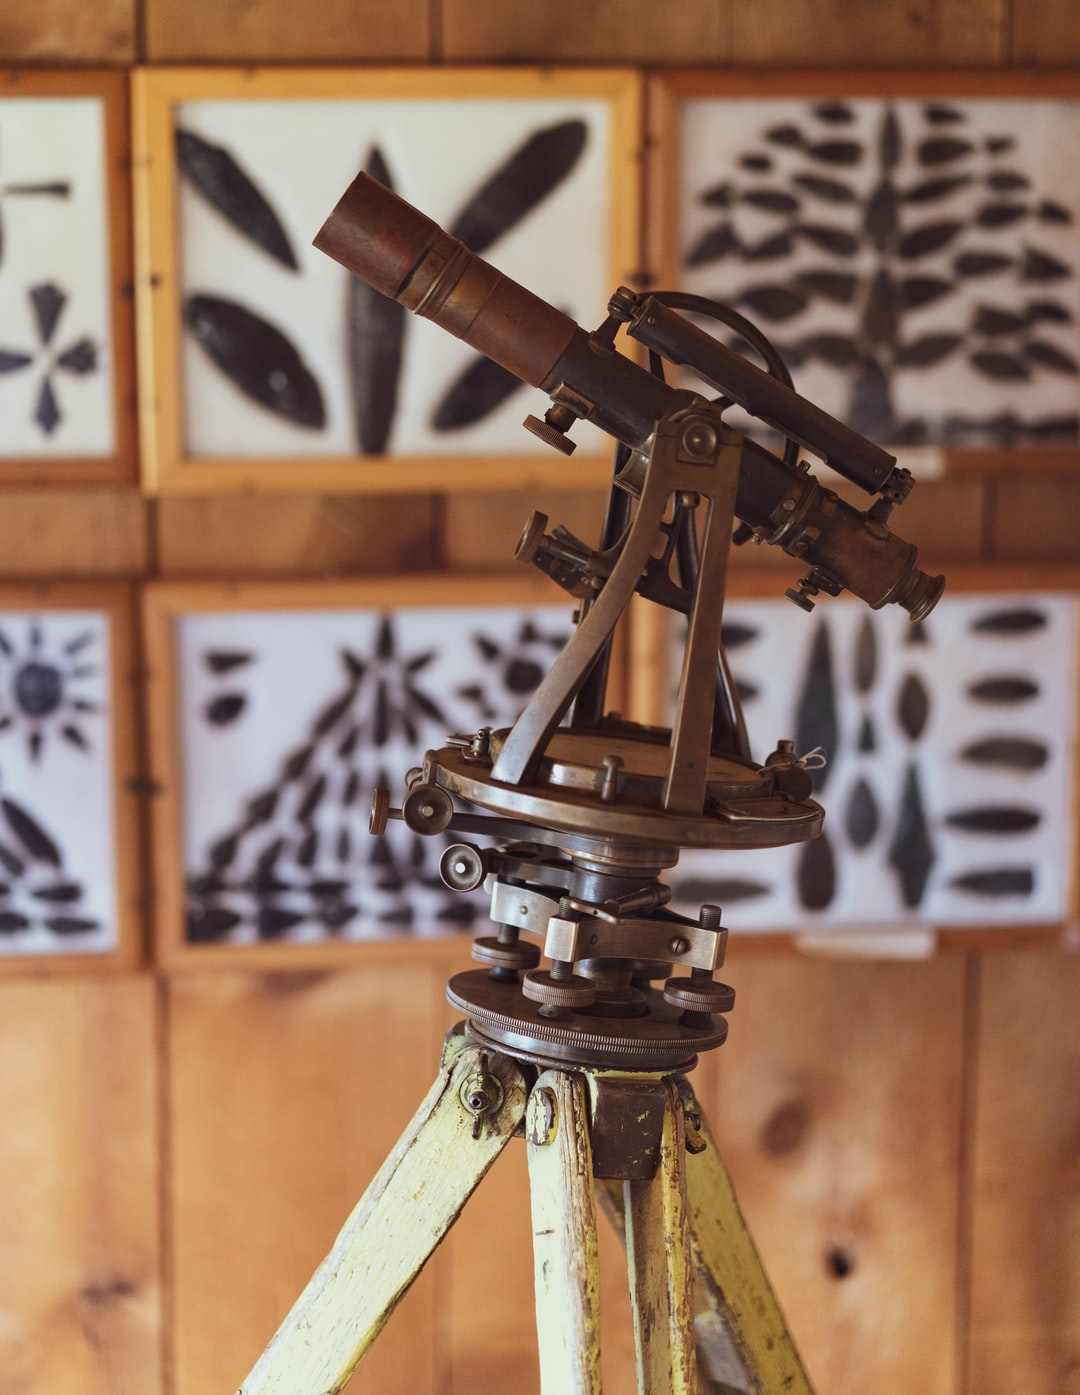 I found this gem at a roadside museum in a tiny town in the middle of nowhere. I shot it with my 55/1.8 lens to get the sharp details from this vintage surveyor tool. Not sure how I feel about the arrowhead artwork in the background... not sure how the indigenous people of this area would feel about it either... but yeah, cool telescope.